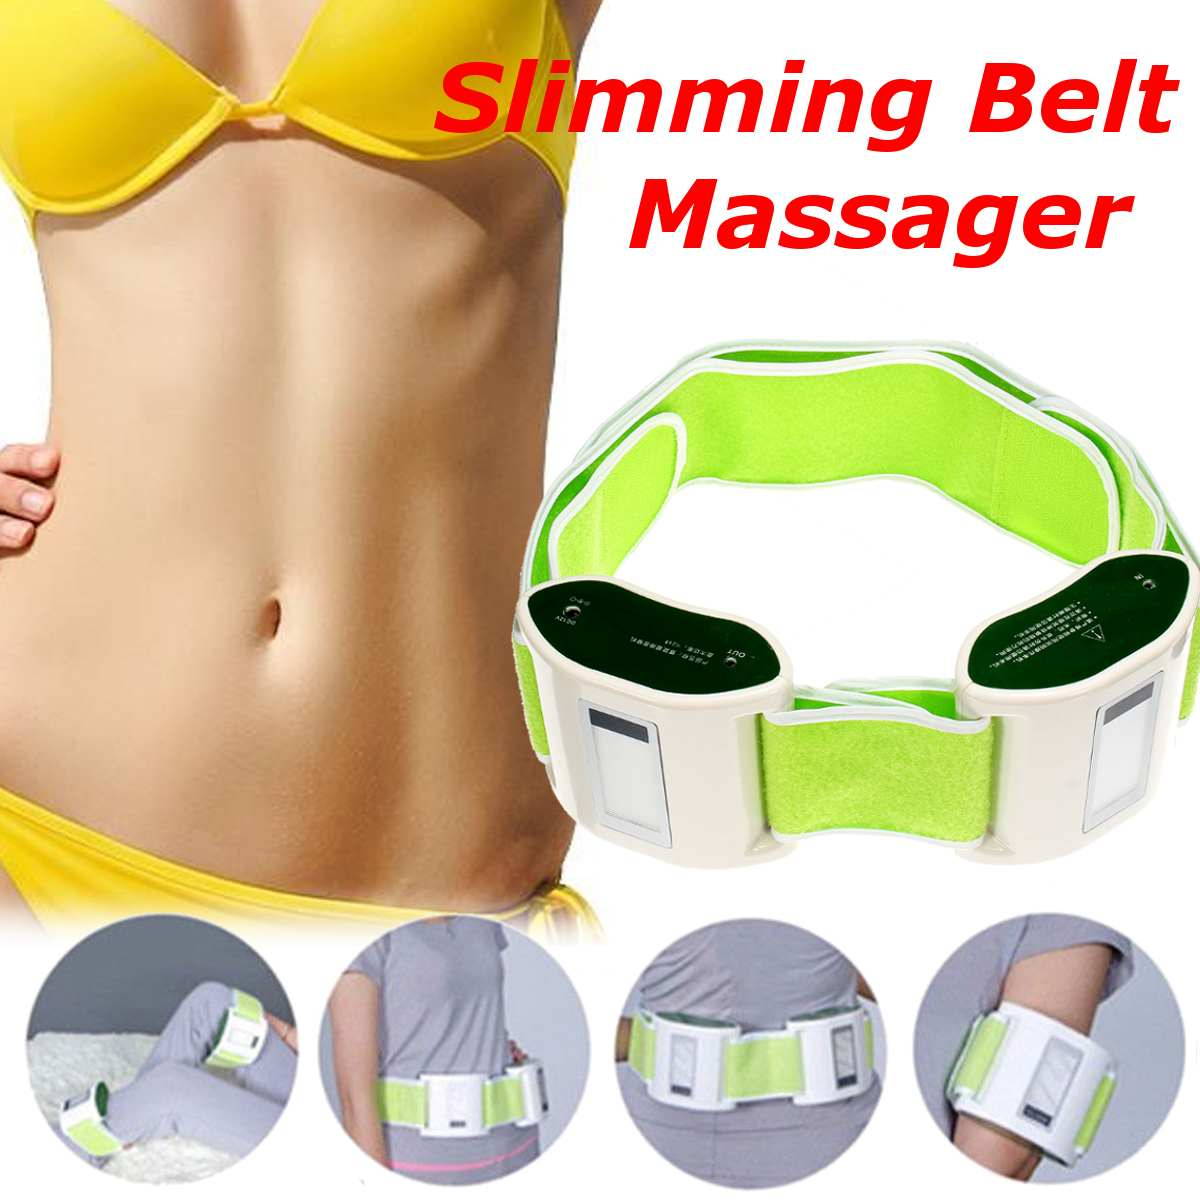 Hot Sale Electric Slimming Belt Lose Weight Sway Vibration Fitness Massage Abdominal Belly Muscle Waist Trainer Stimulator